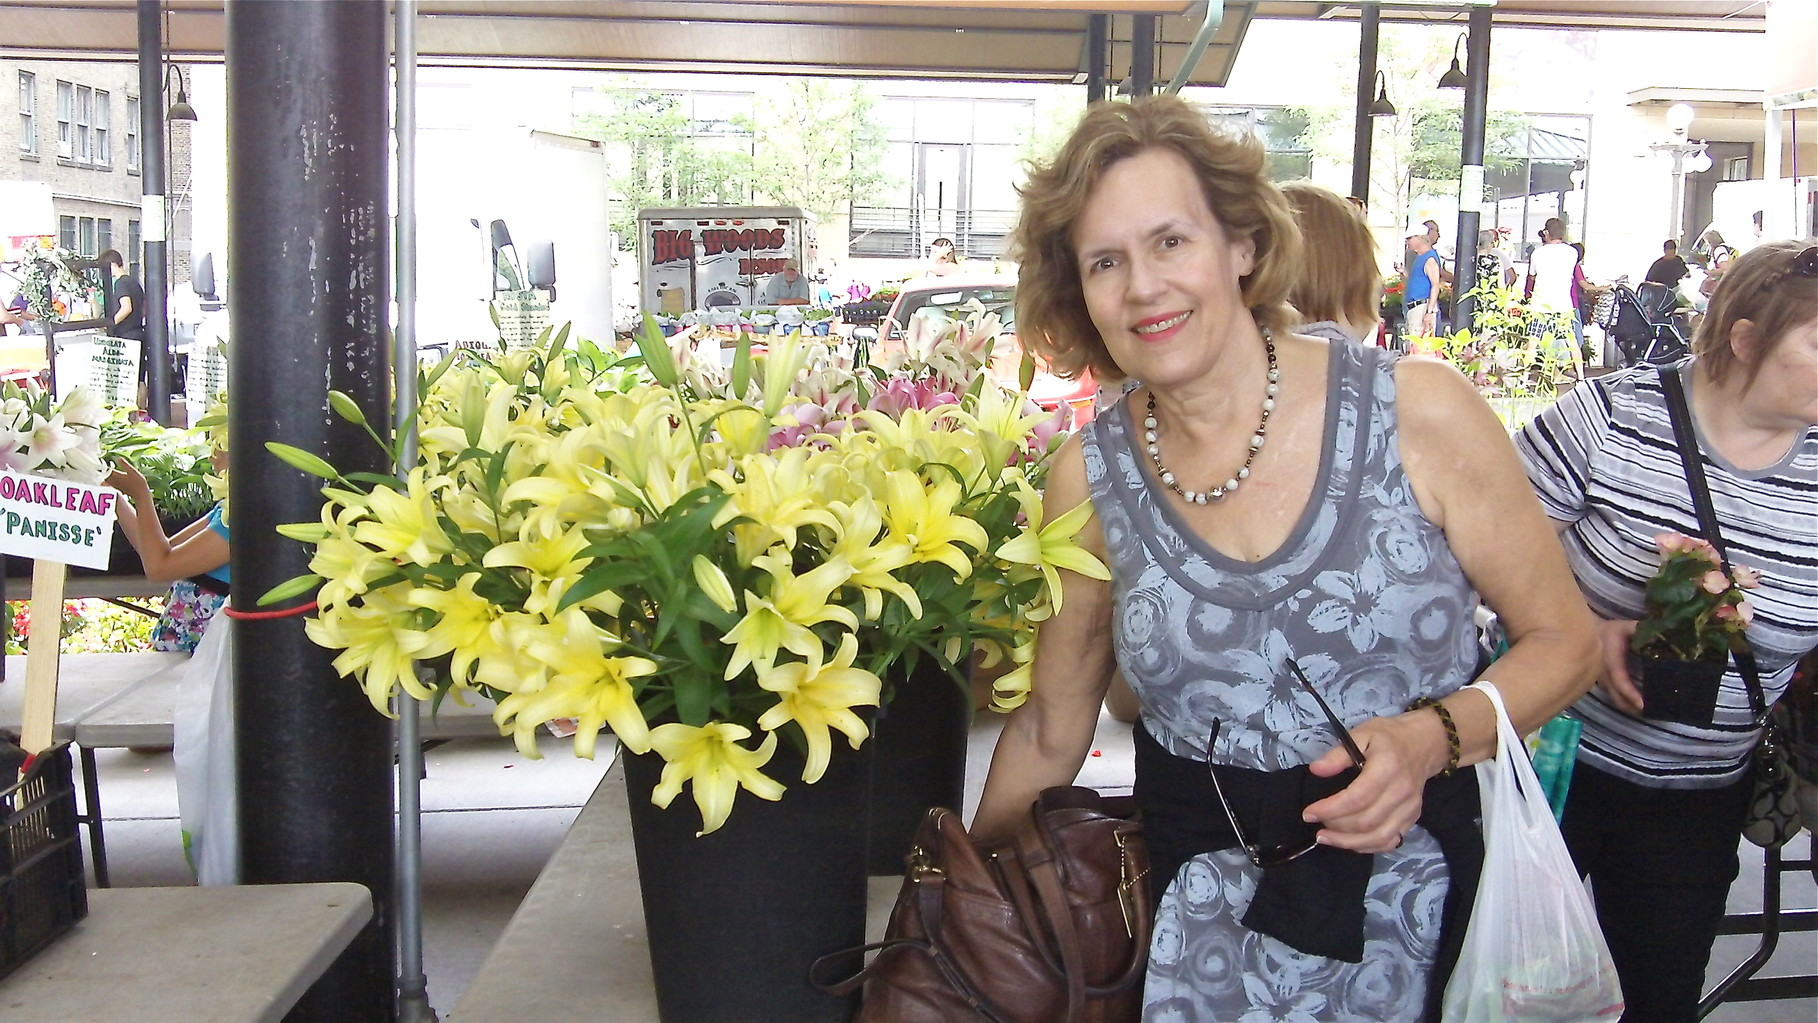 Lorraine Gudas admires the lillies at the Farmer's Market